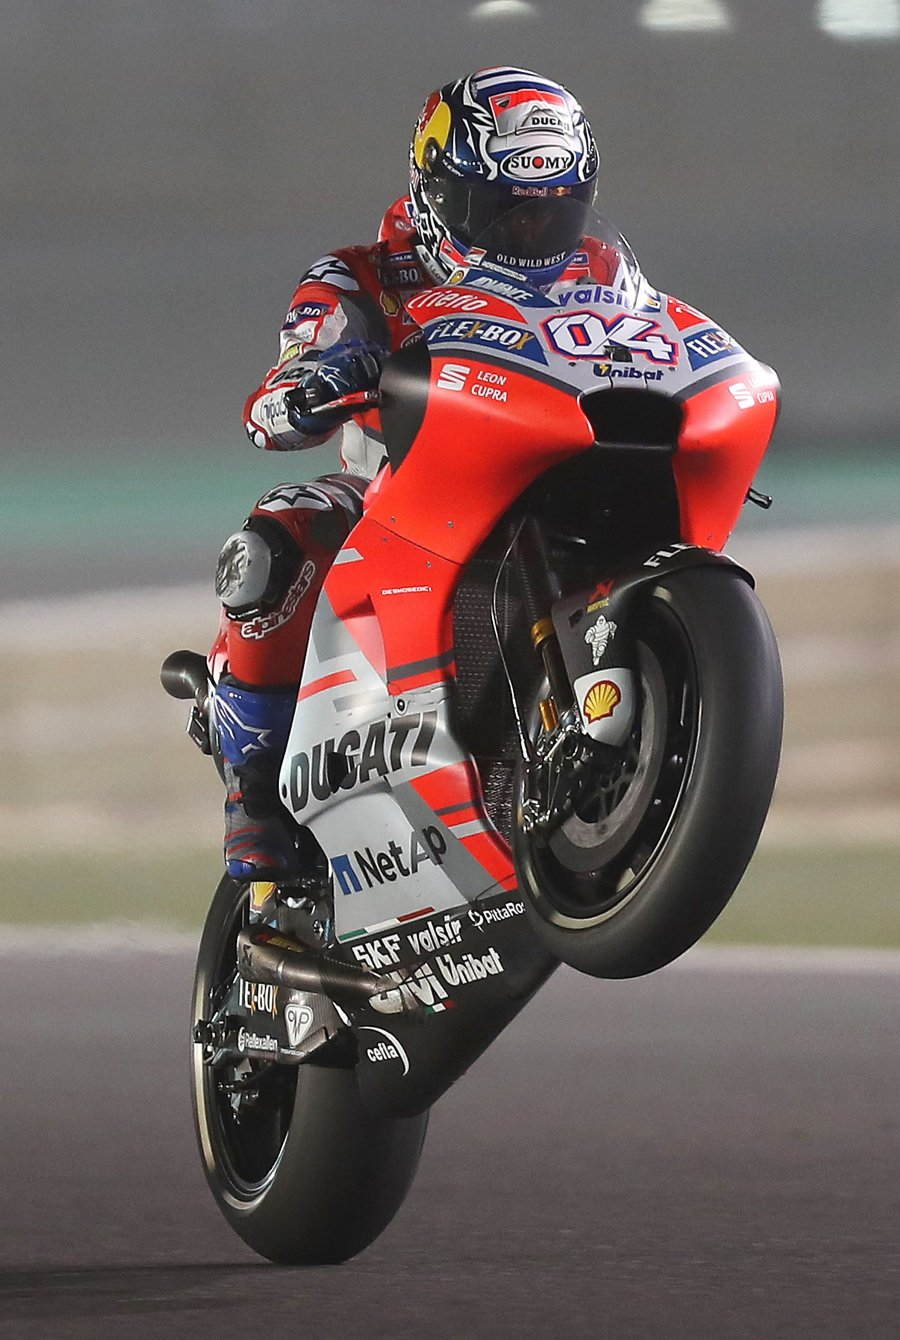 Ducati's Italian driver Andrea Dovizioso competes during the MOTOGP qualifiers at the Losail International Circuit in Doha. AFP